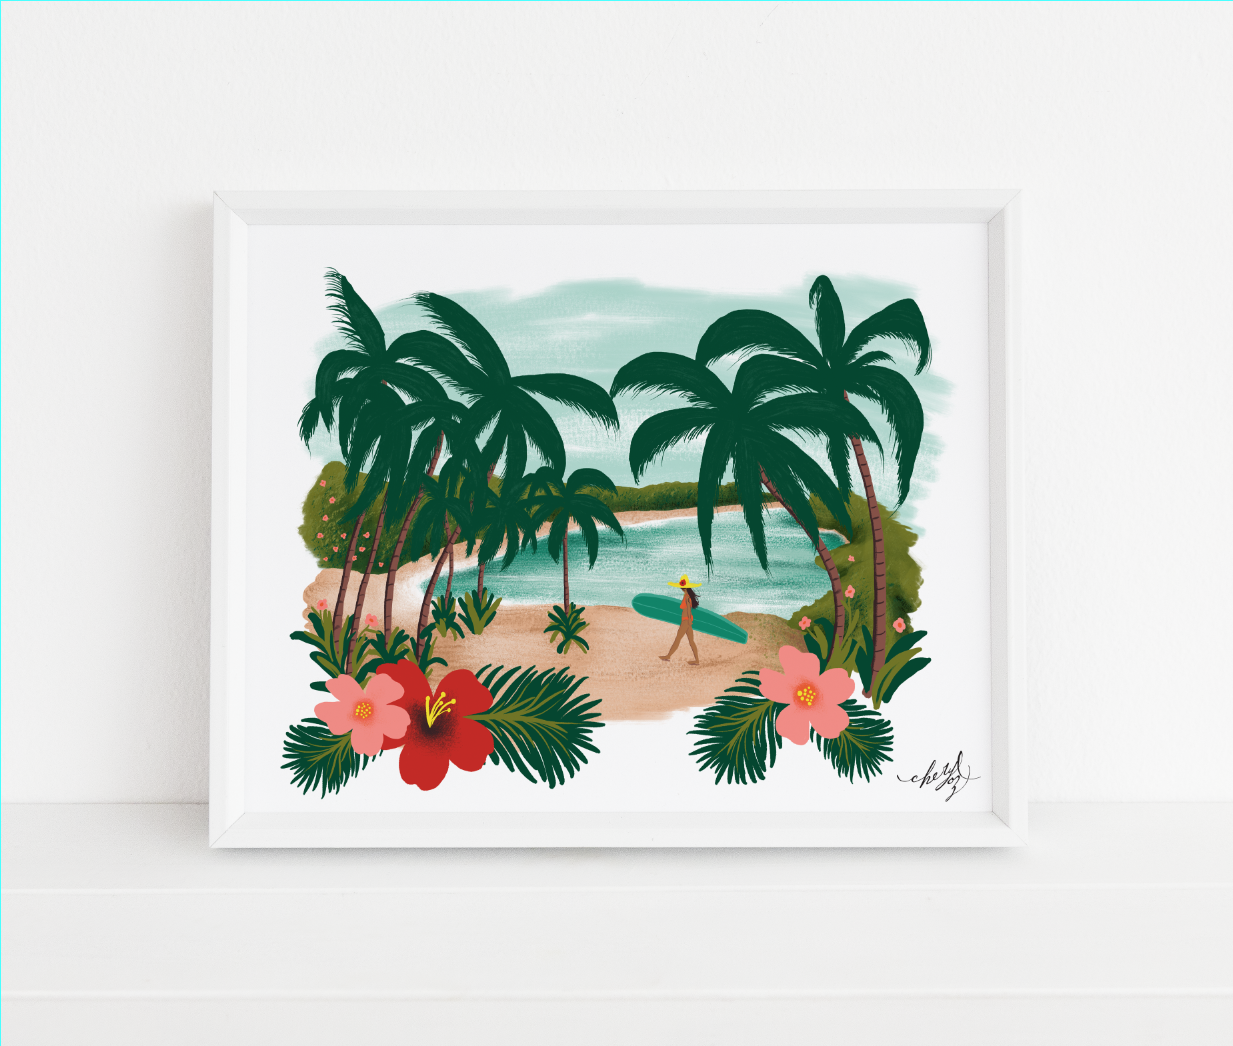 Paradise Digital Gouache Illustration by Cheryl Oz